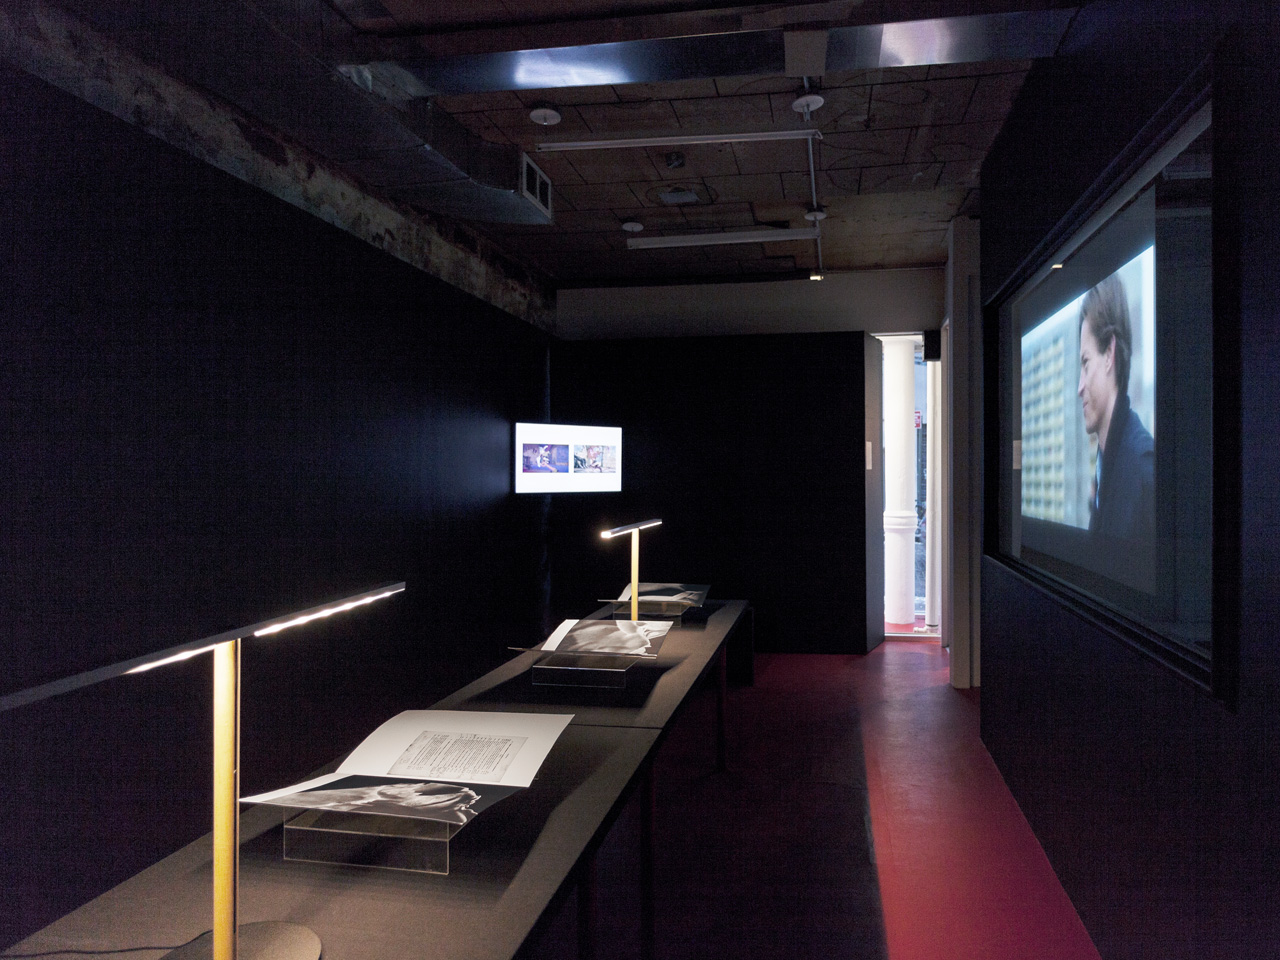 P!,  Exhibition view featuring Åbäke, Pieta in Reverse, 2012; Oliver Laric, Versions (Mandarin version), 2013; Amie Siegel, Berlin Remake, 2005